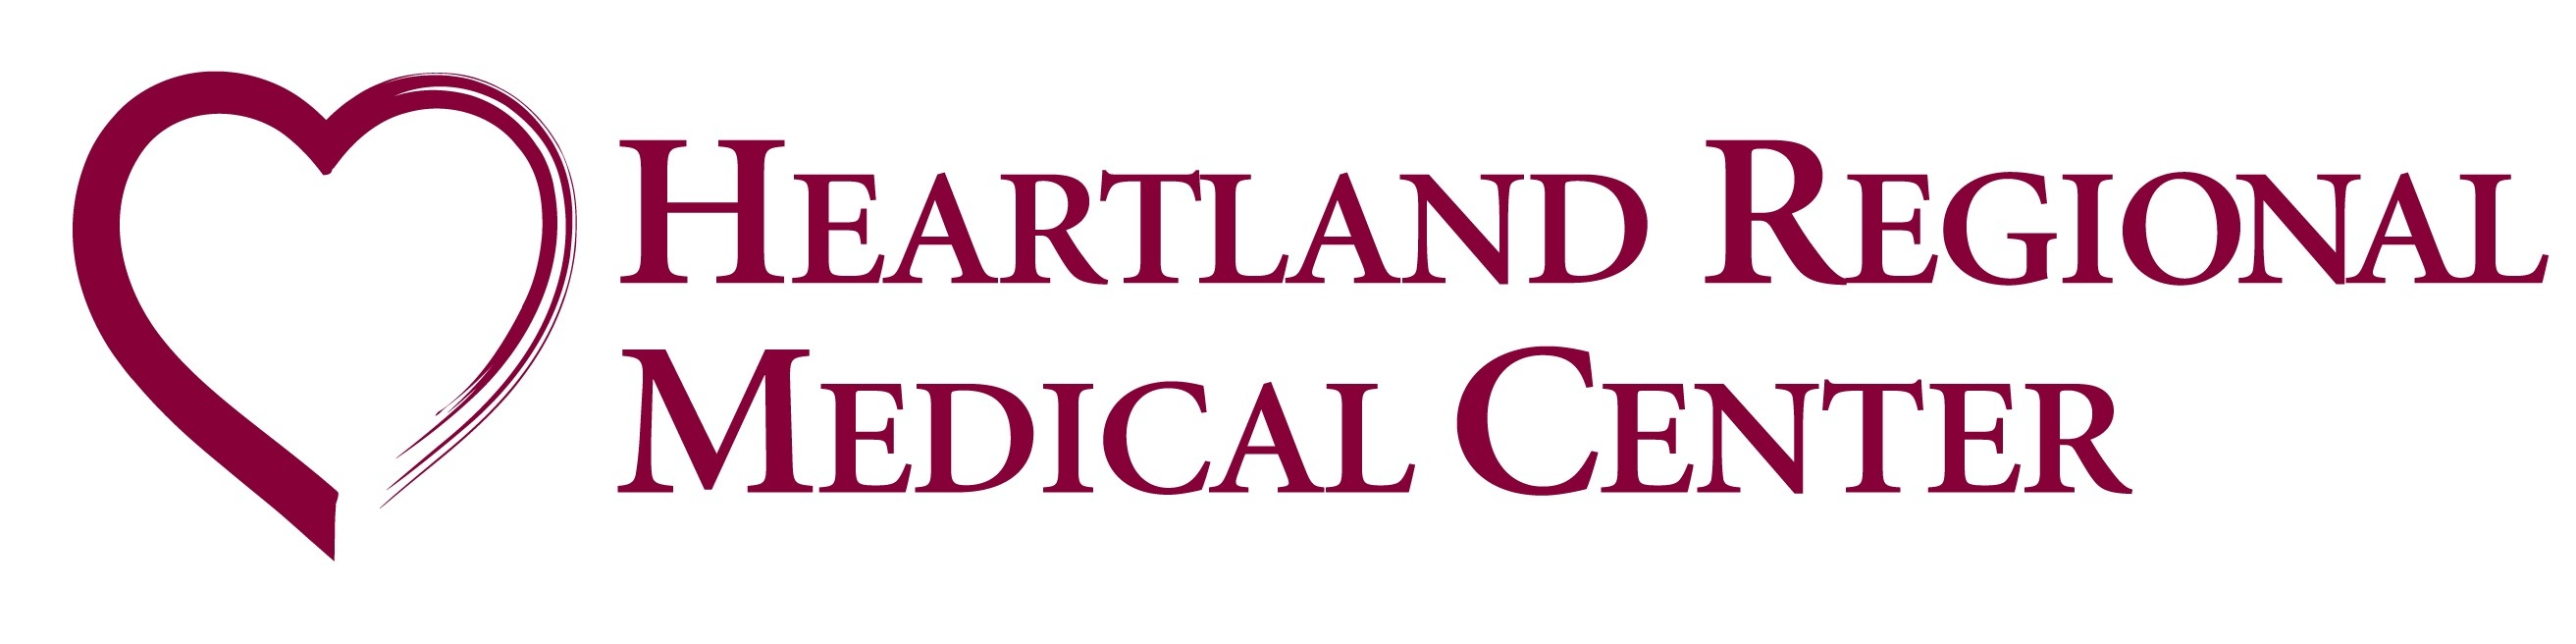 Heartland Regional Medical Center